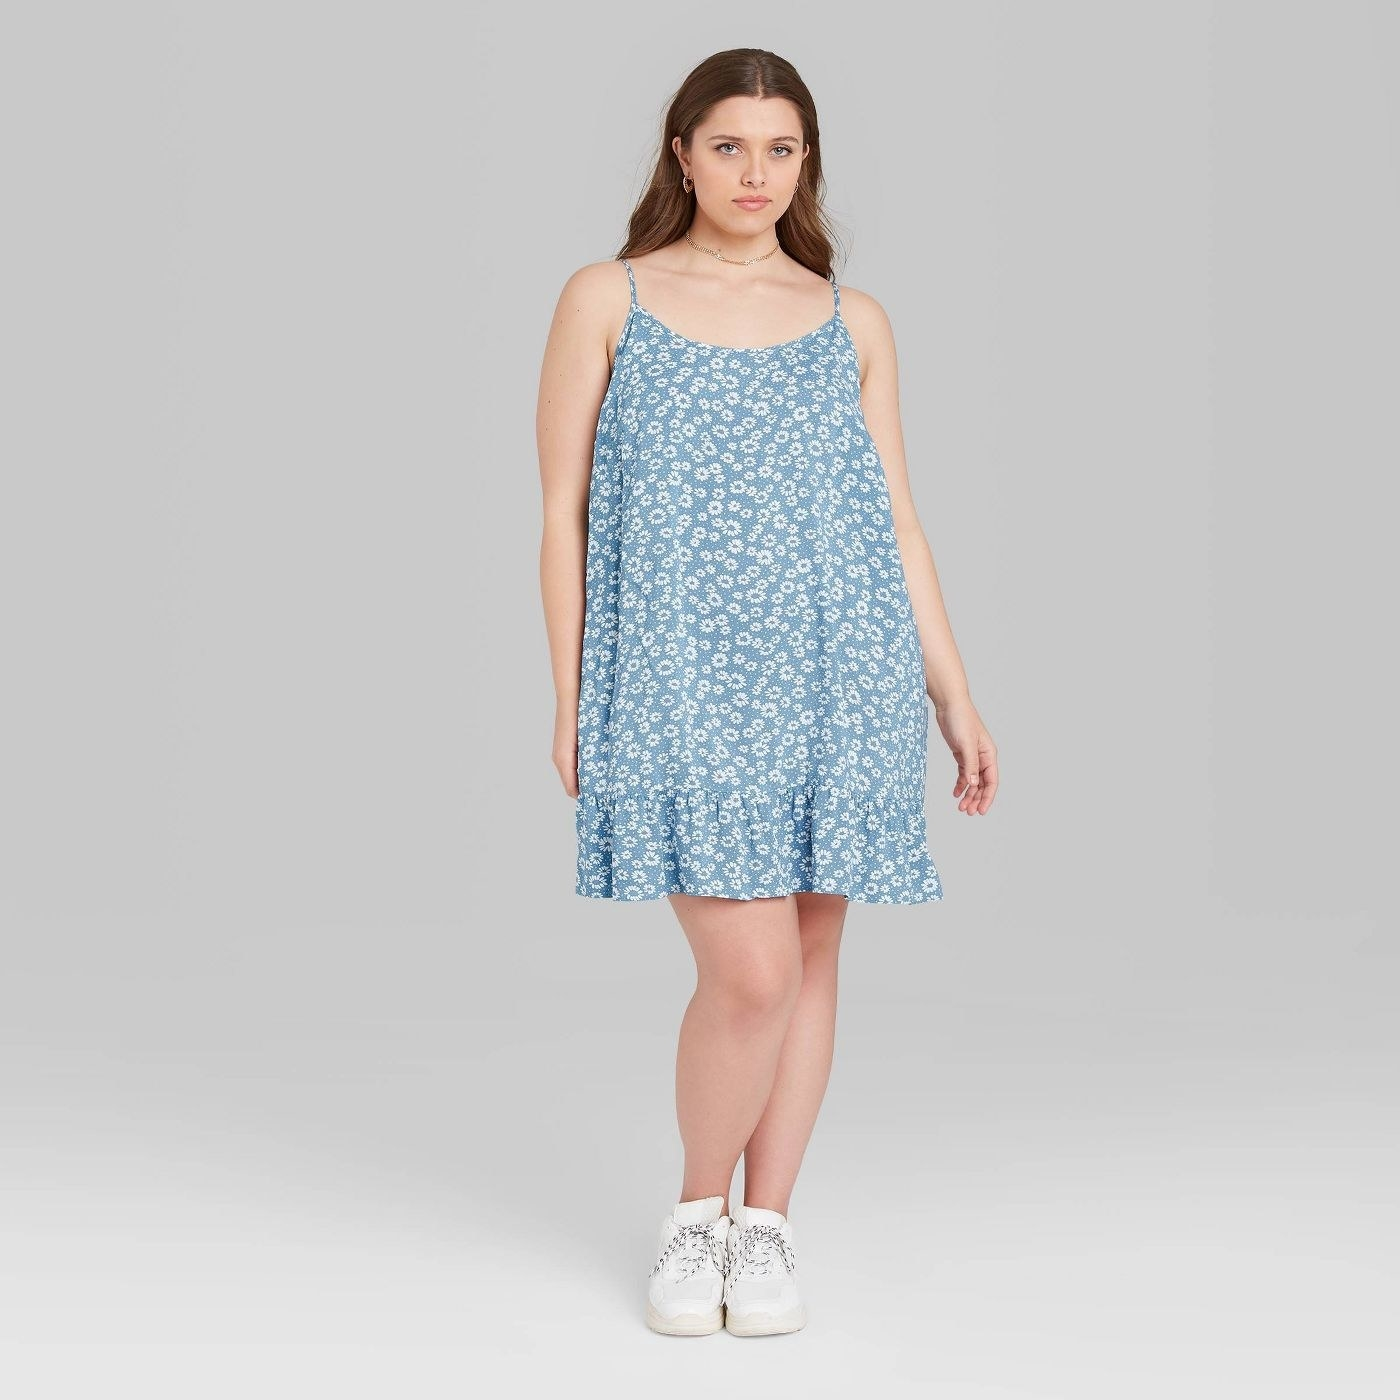 Model wearing light blue sundress with white floral pattern